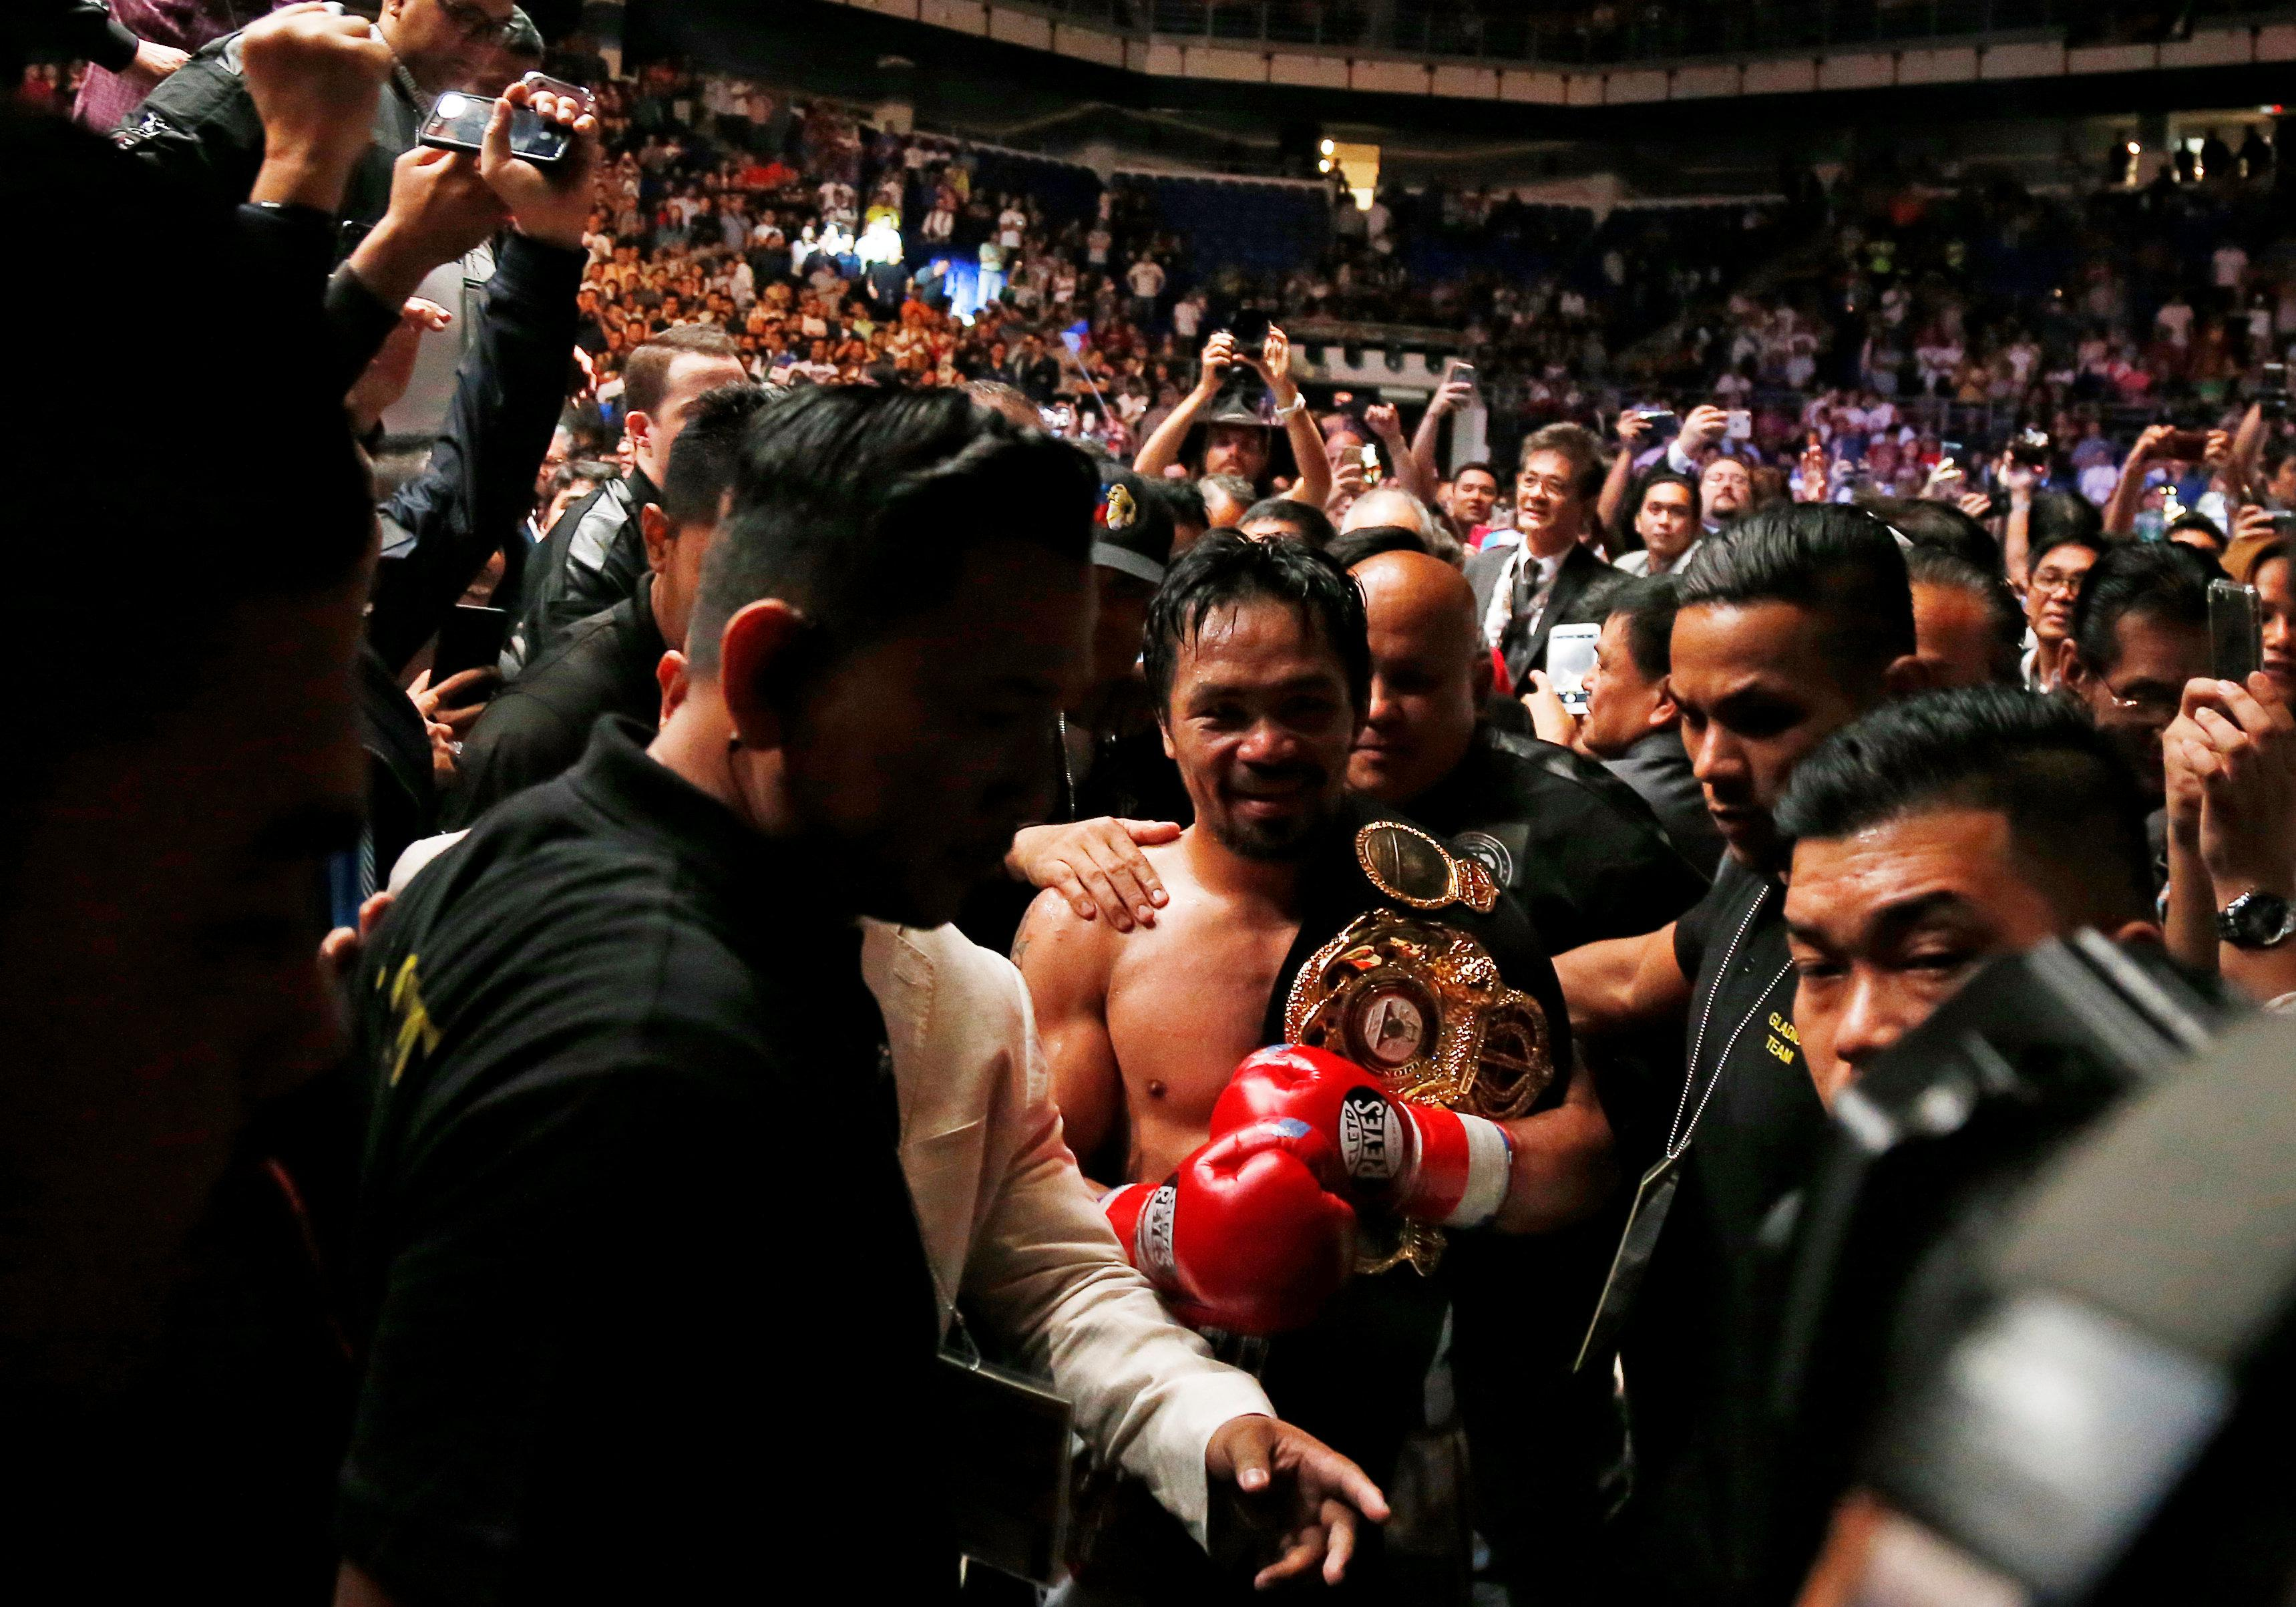 Pacquiao is mobbed by delighted fans as he departs victorious back to the dressing-room